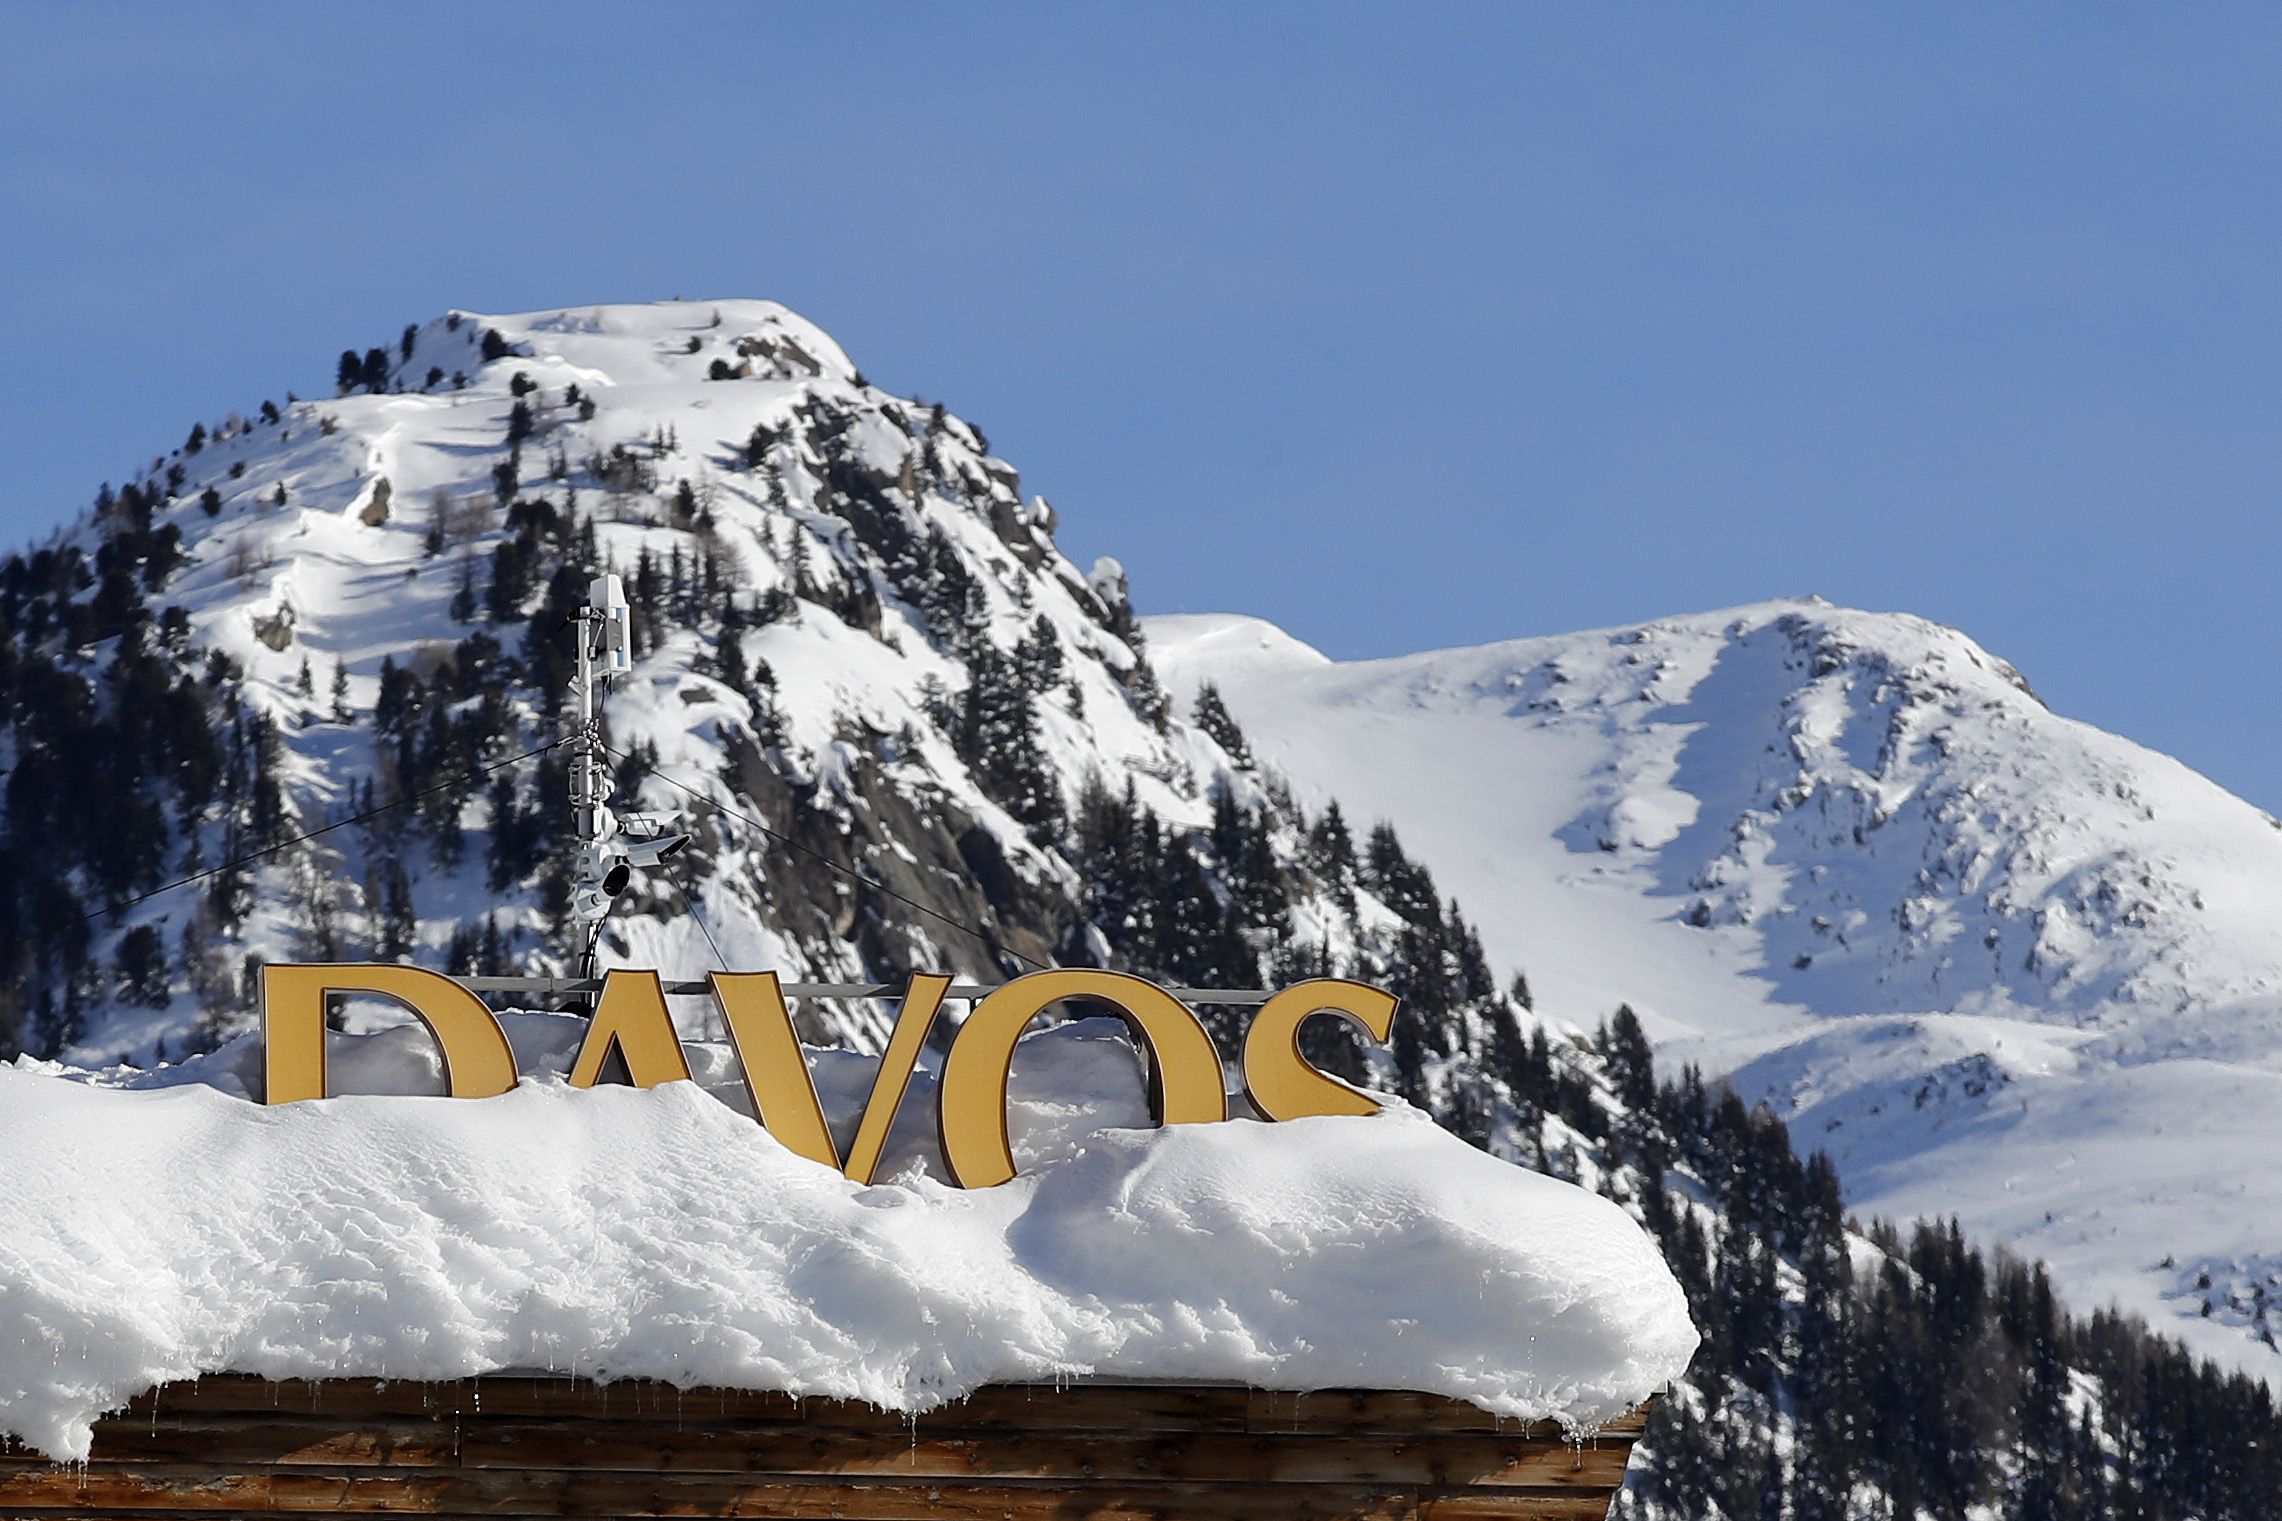 Will Davos See a Clash Between Populists and Globalists?